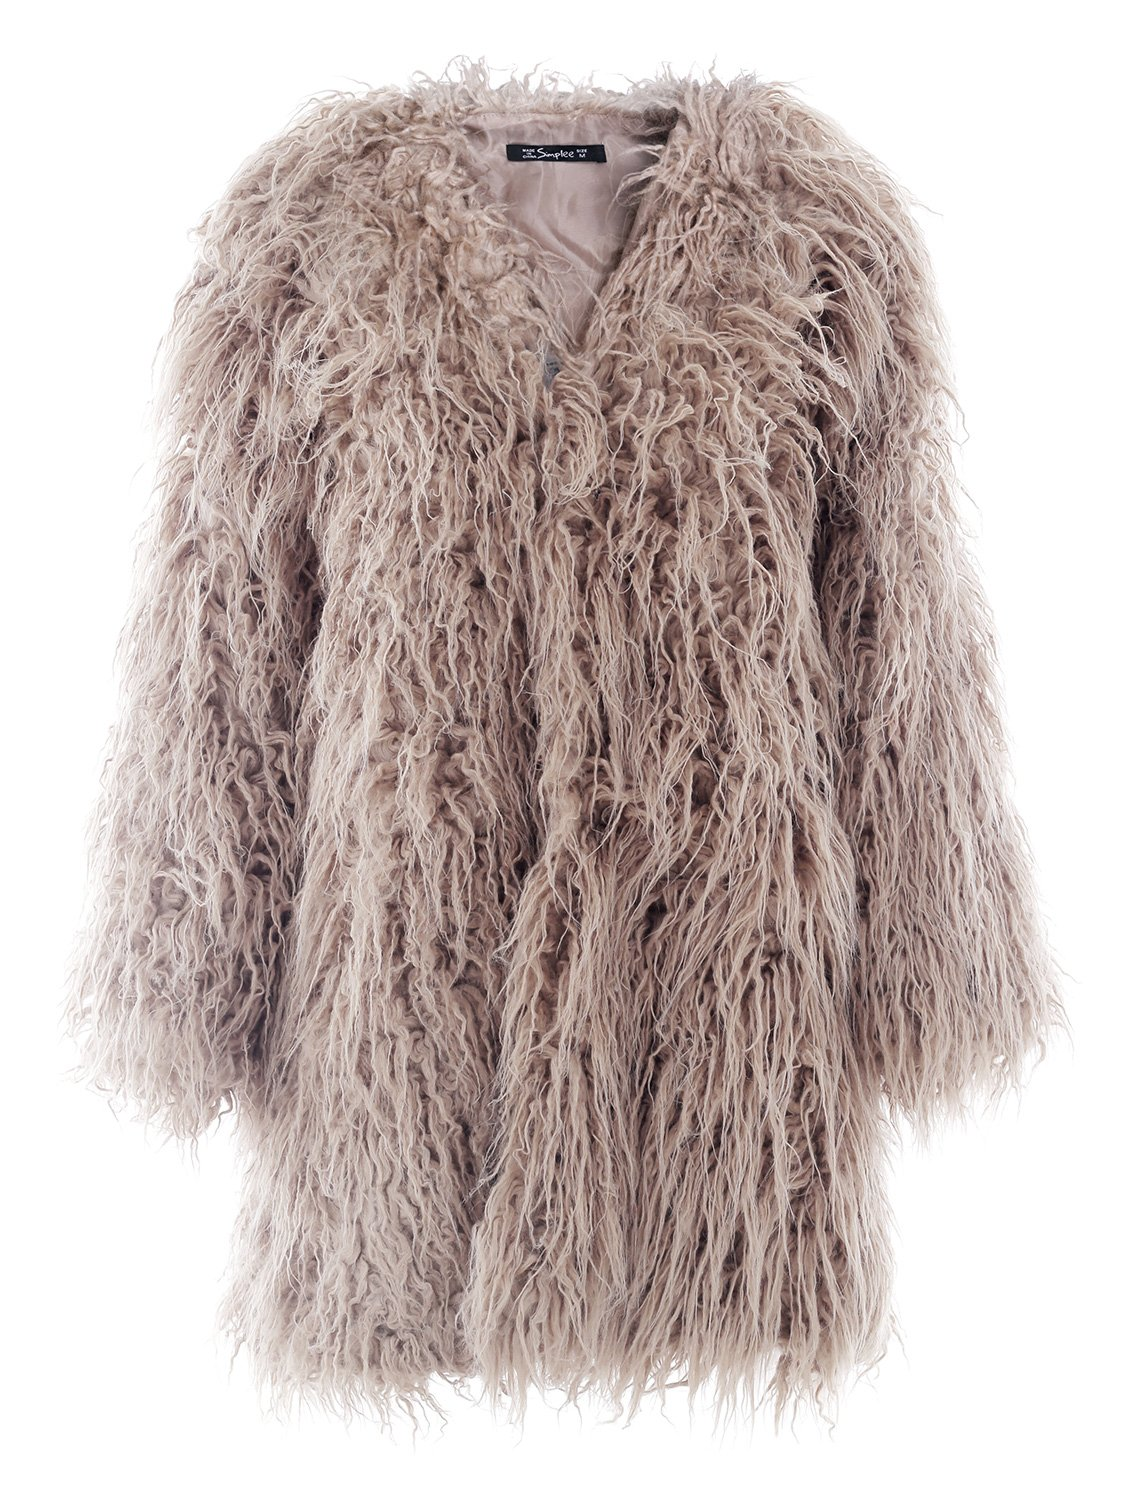 Simplee Apparel Women's Winter Warm Fluffy Long Faux Fur Coat Jacket Outwear